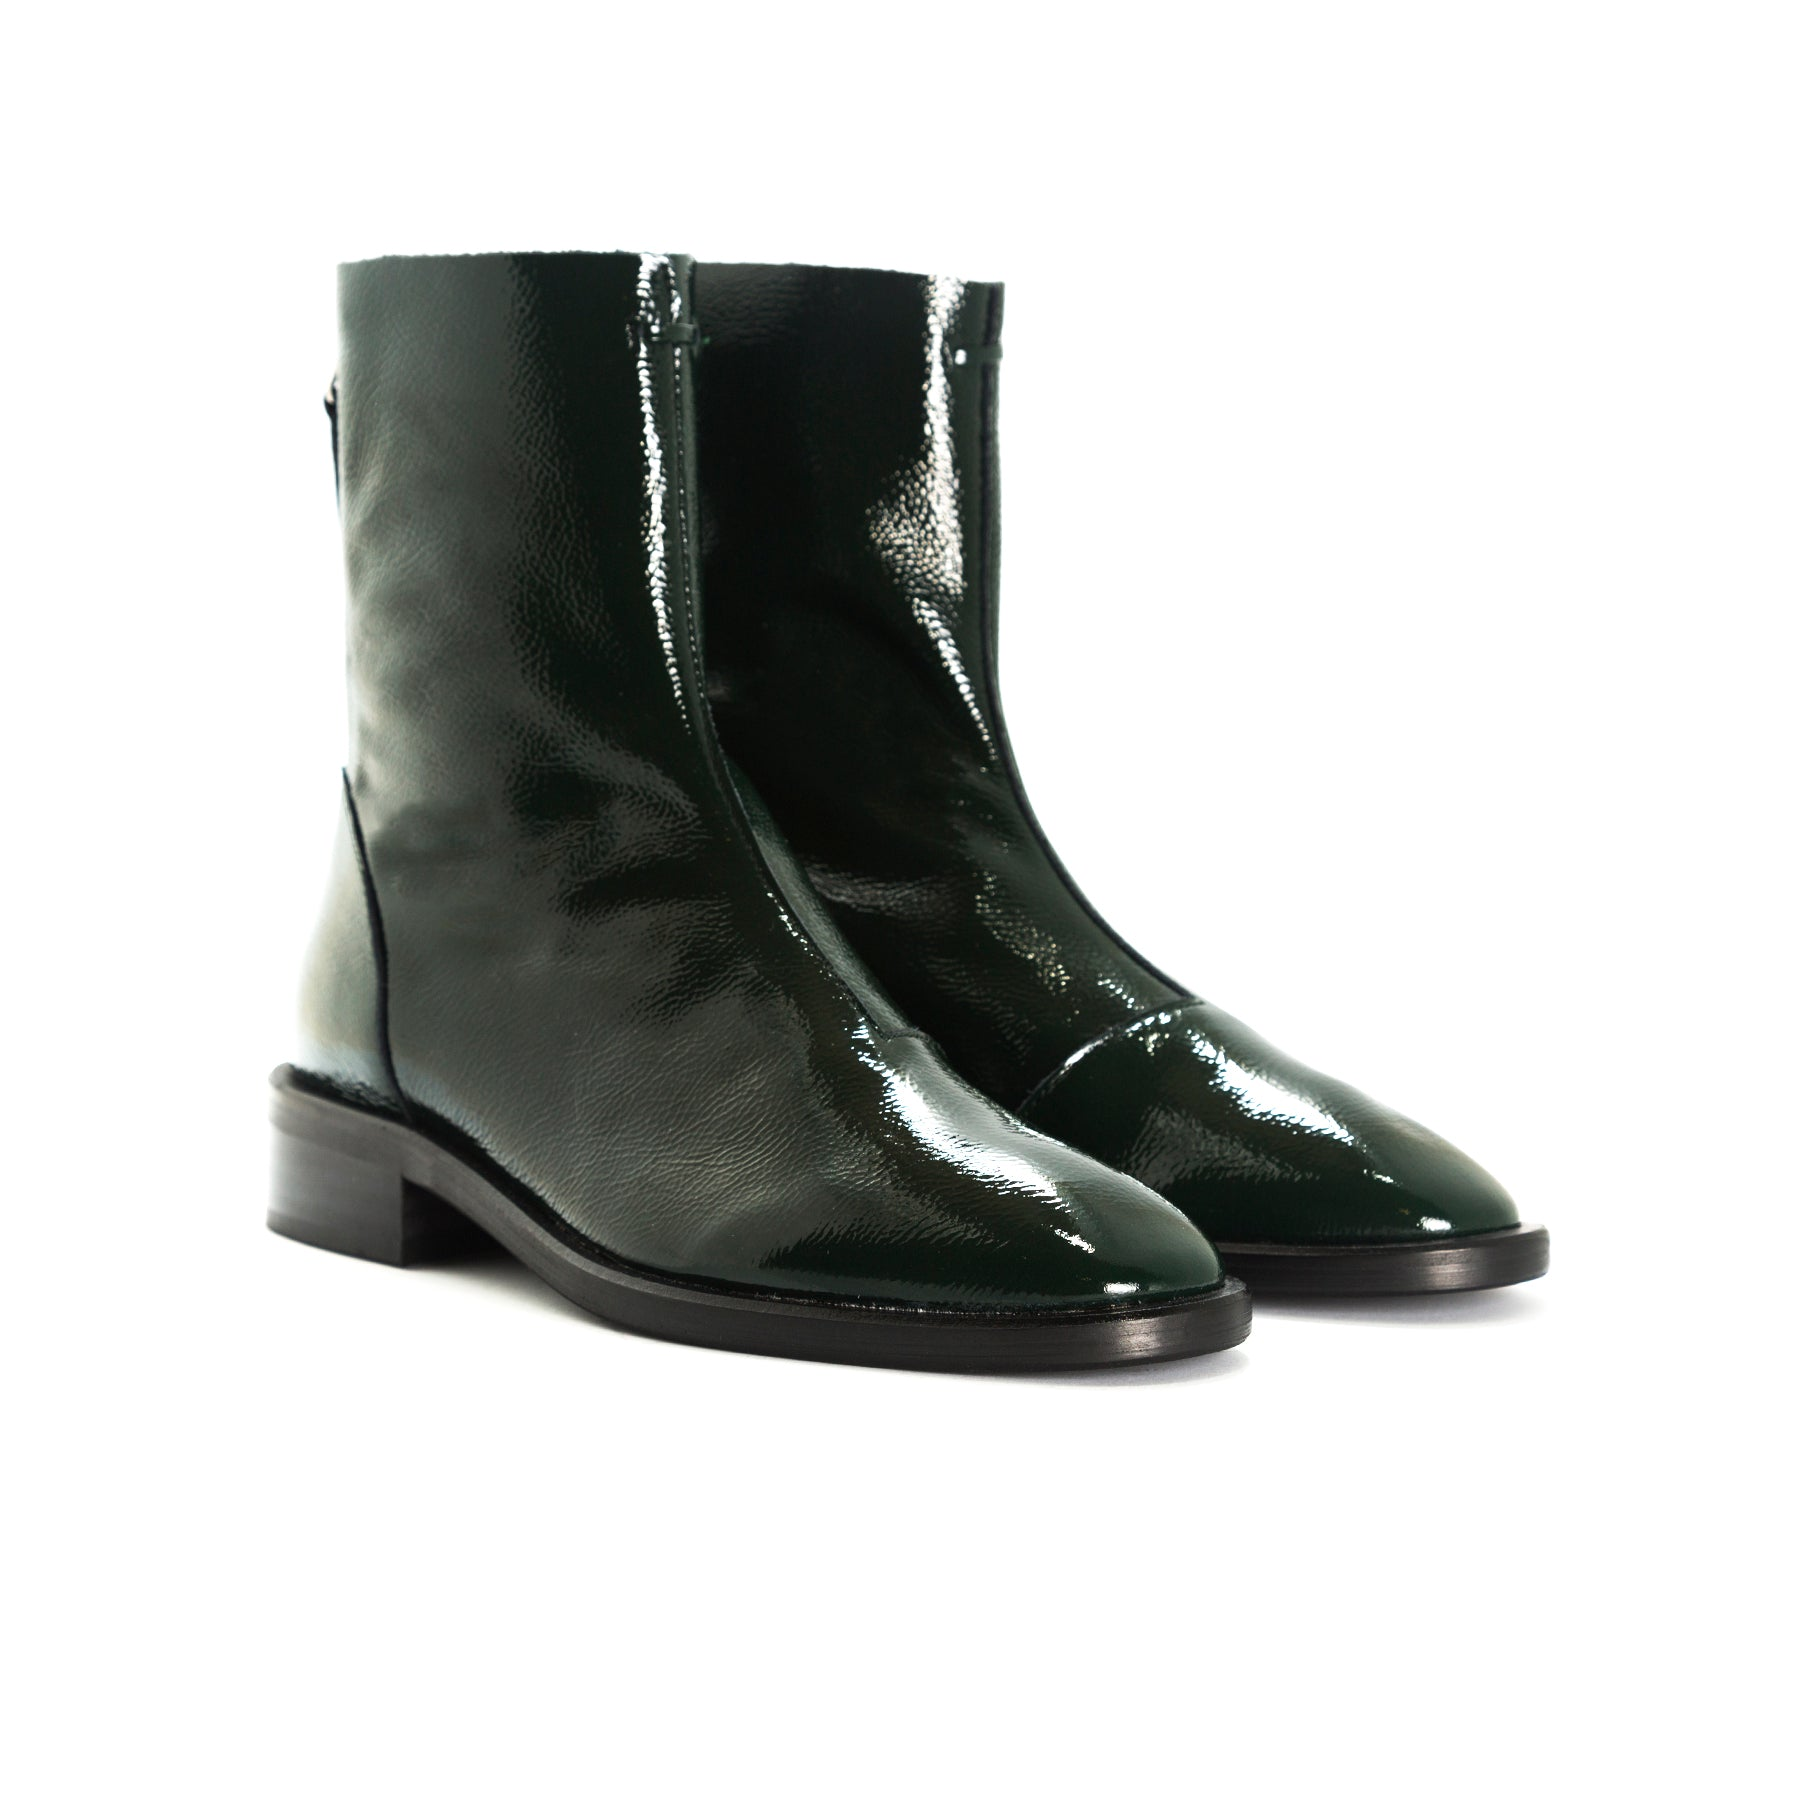 Dalton Green Naplack Booties